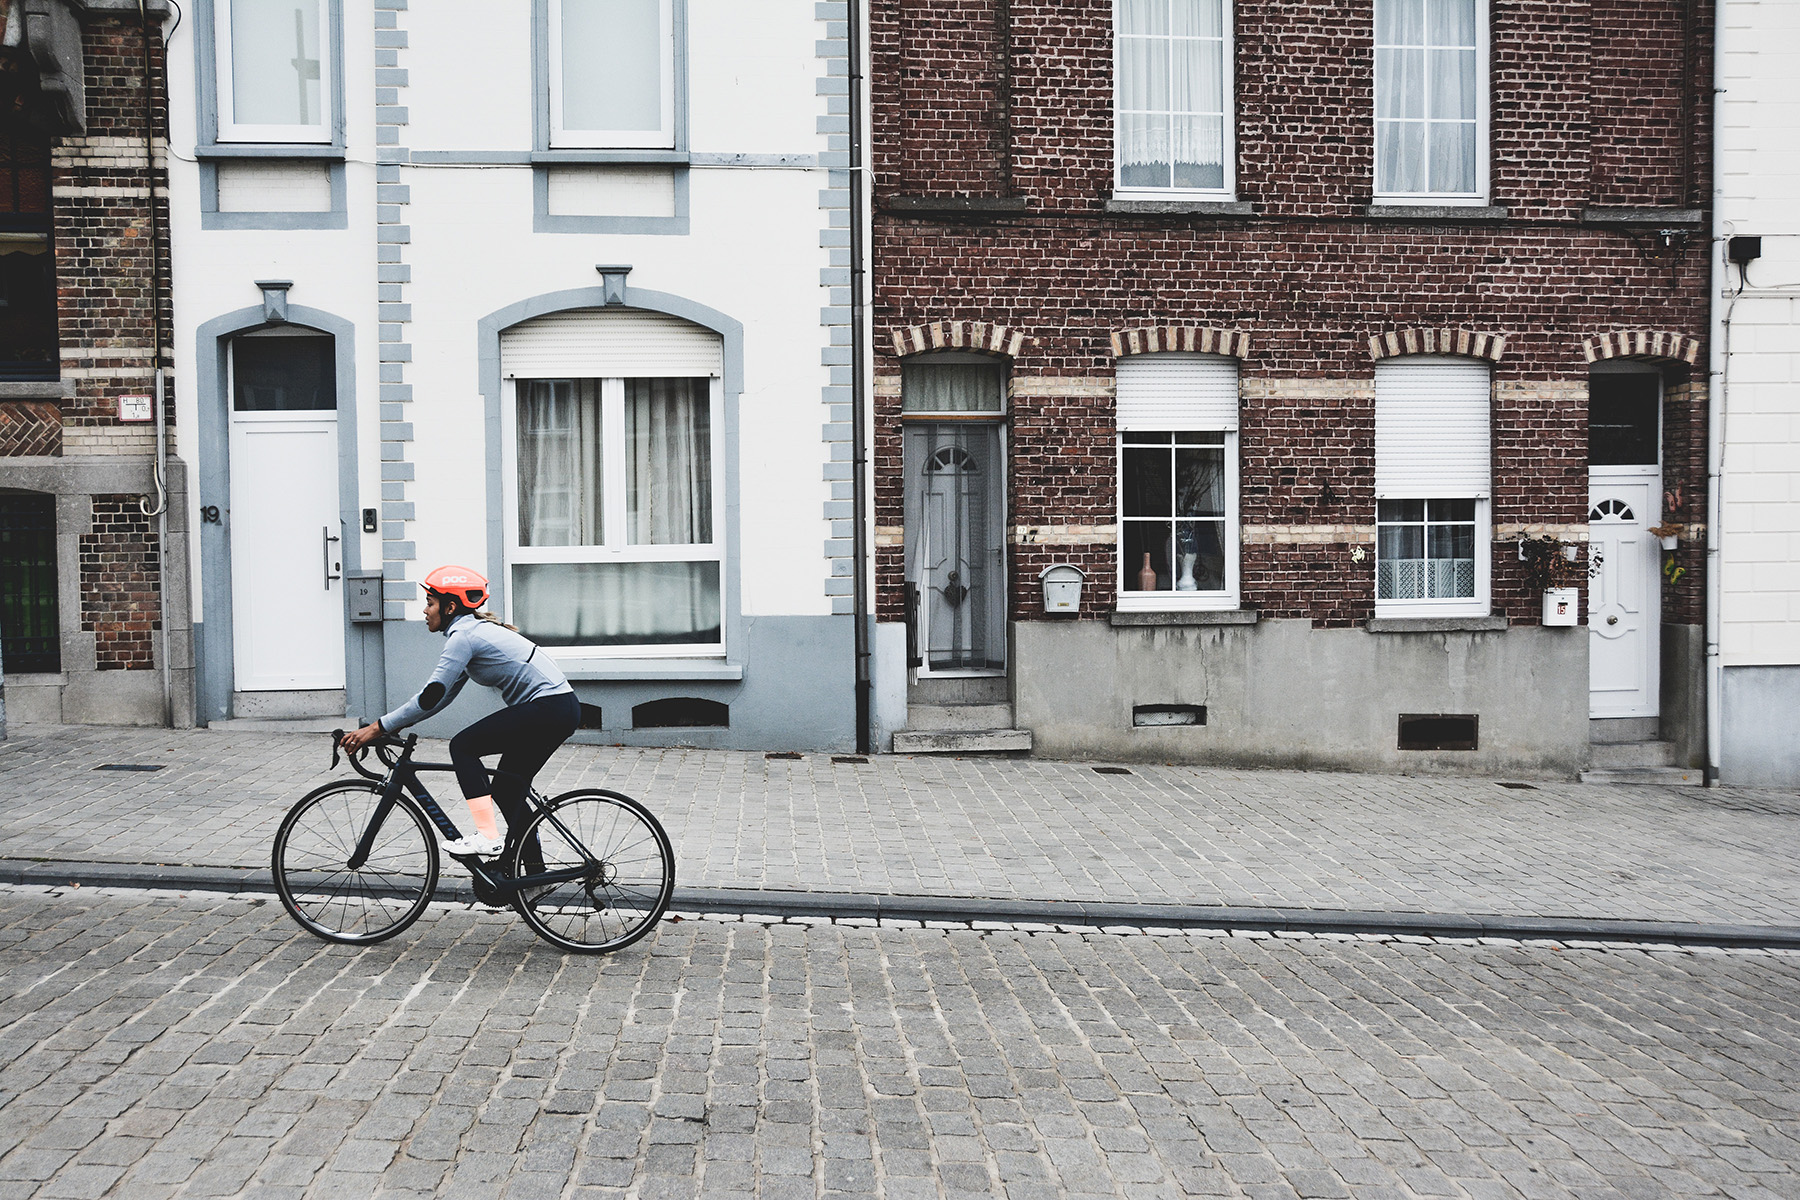 Cyclist in a Belgian city